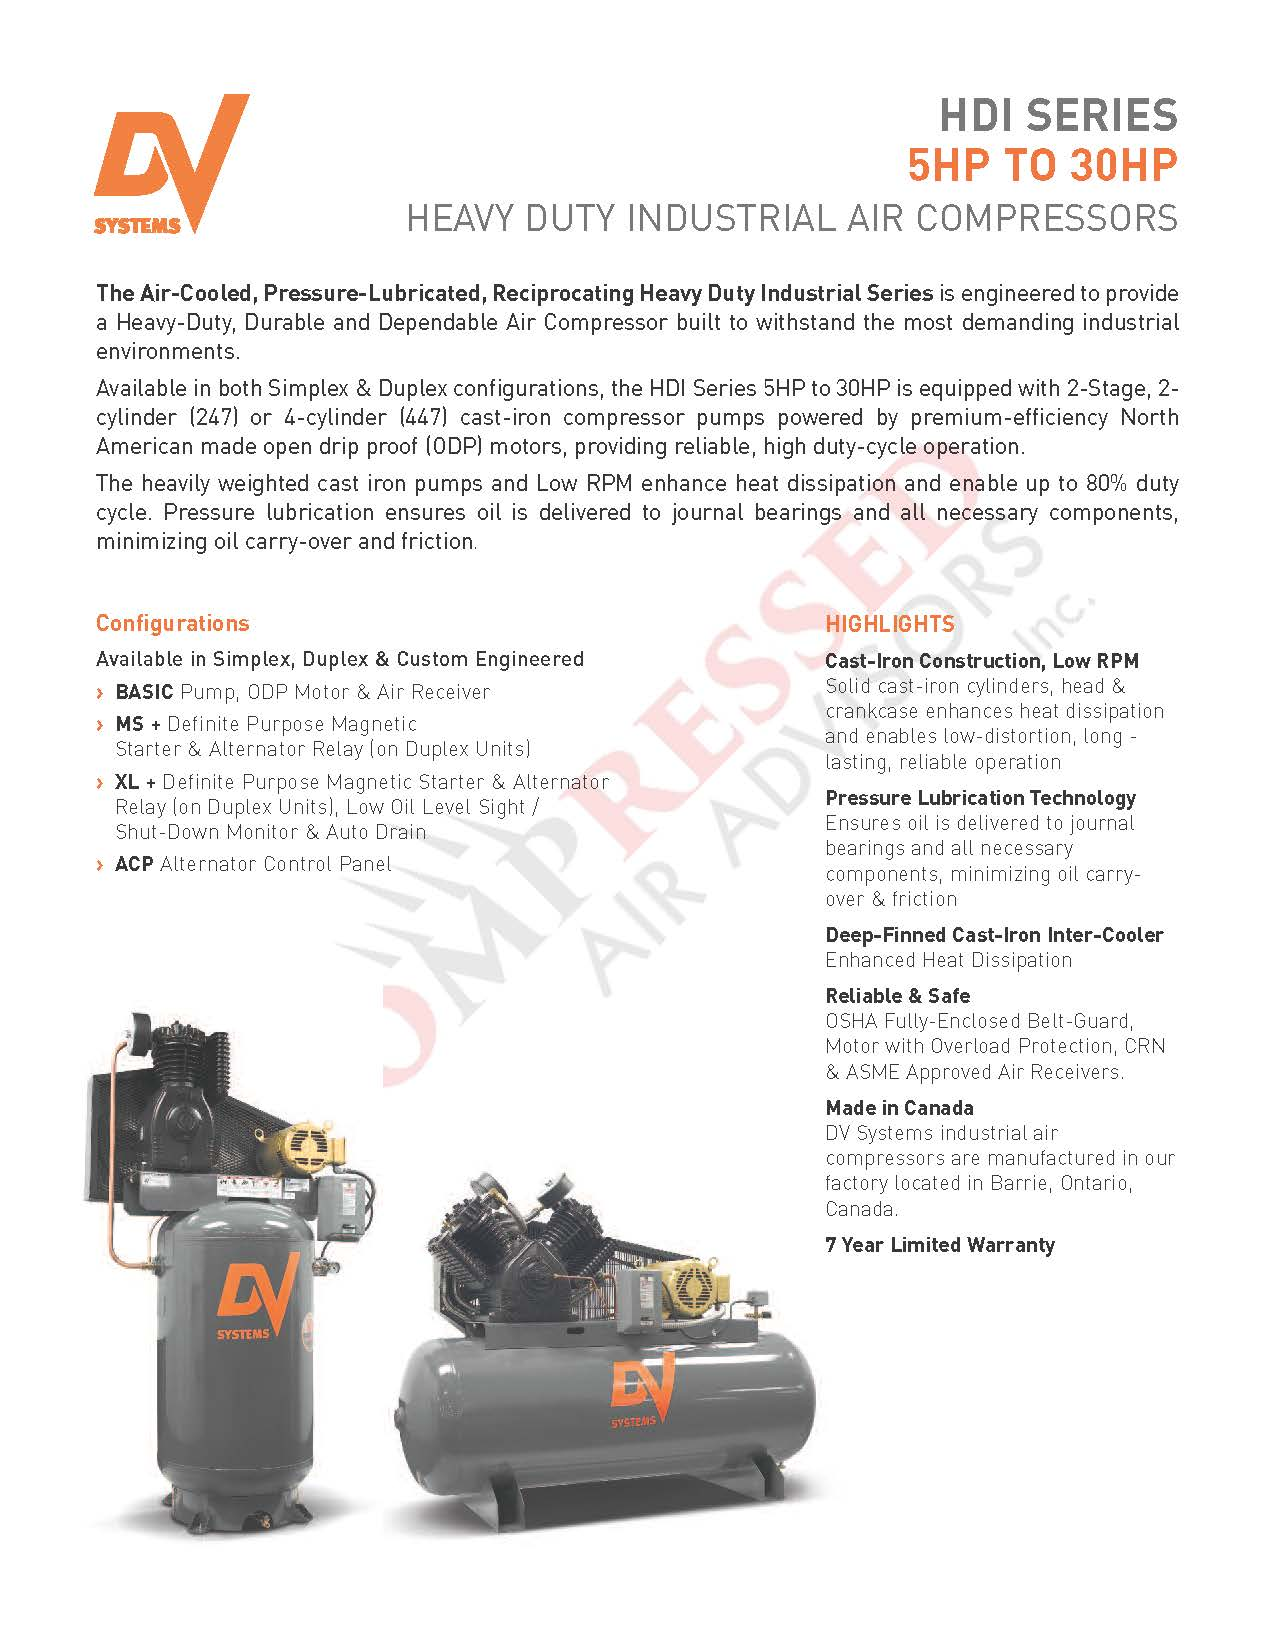 Chick Here for DV Systems HDI Reciprocating Air Compressors